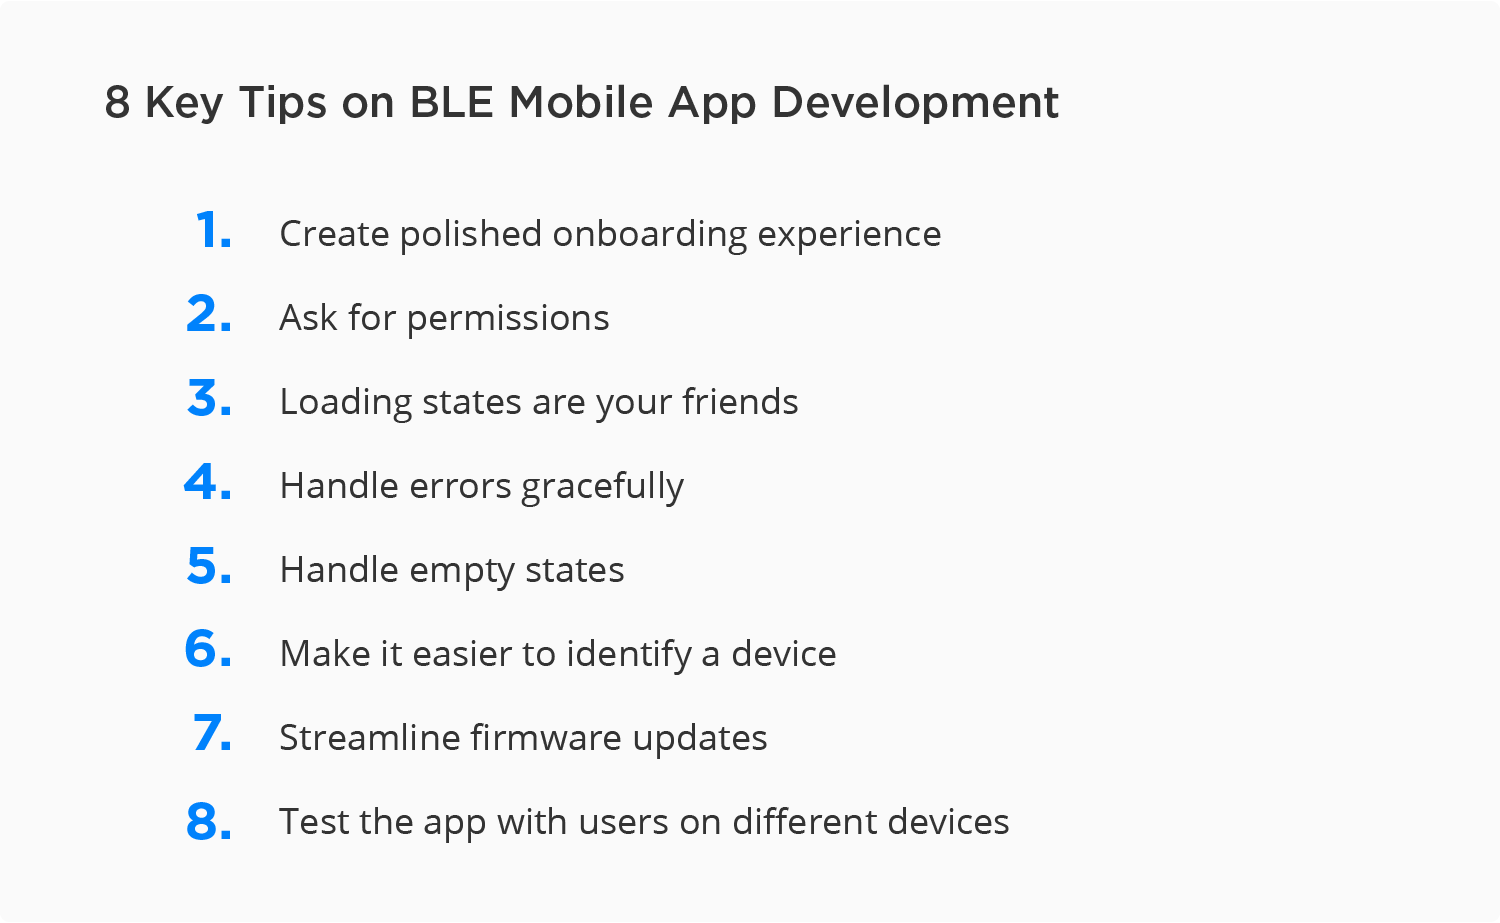 Tips on BLE mobile app development